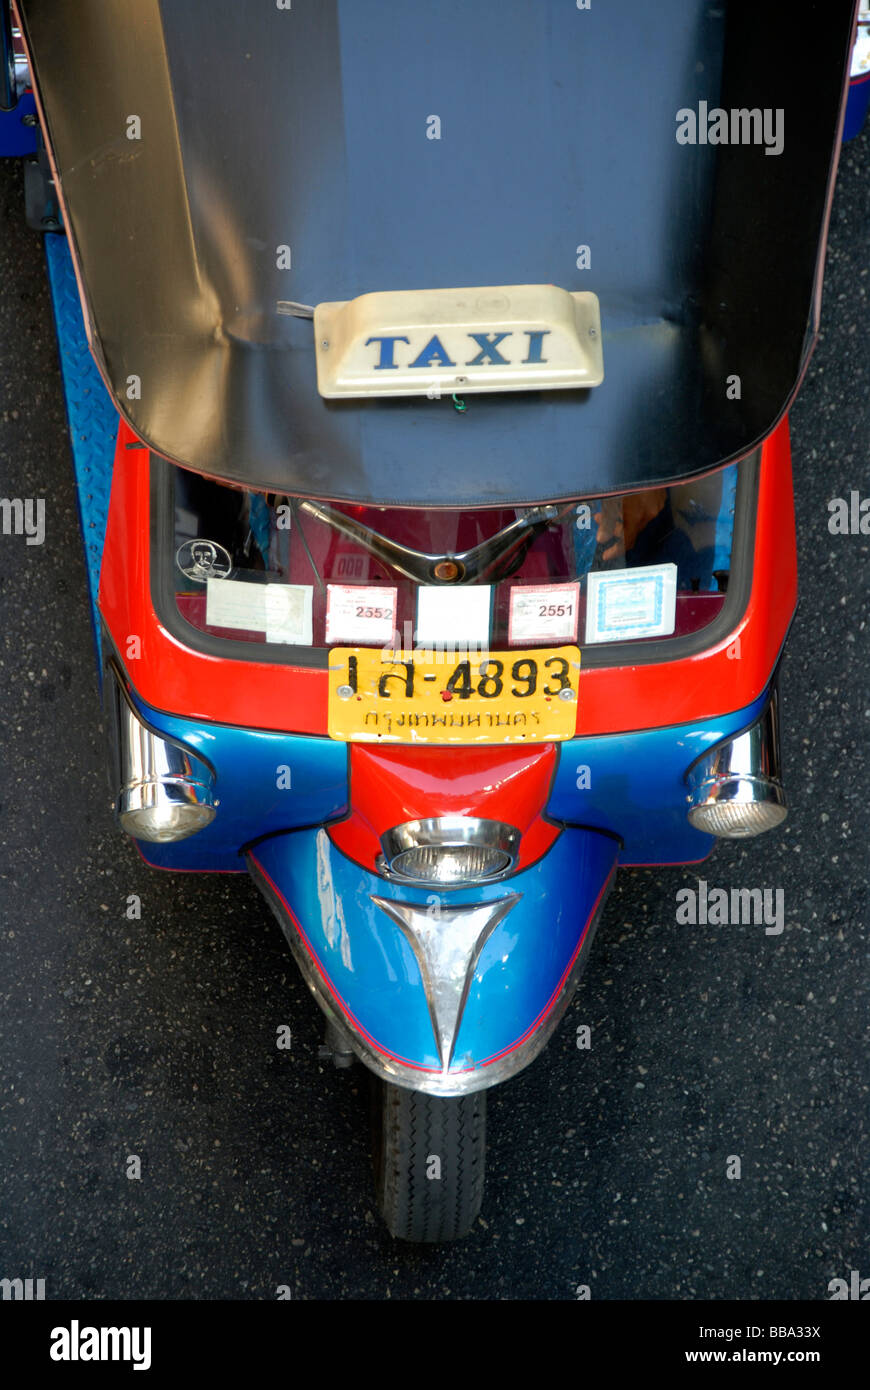 Blue red tricycle, auto rickshaw, tuk-tuk taxi from above, Bangkok, Thailand, Southeast Asia, Asia - Stock Image